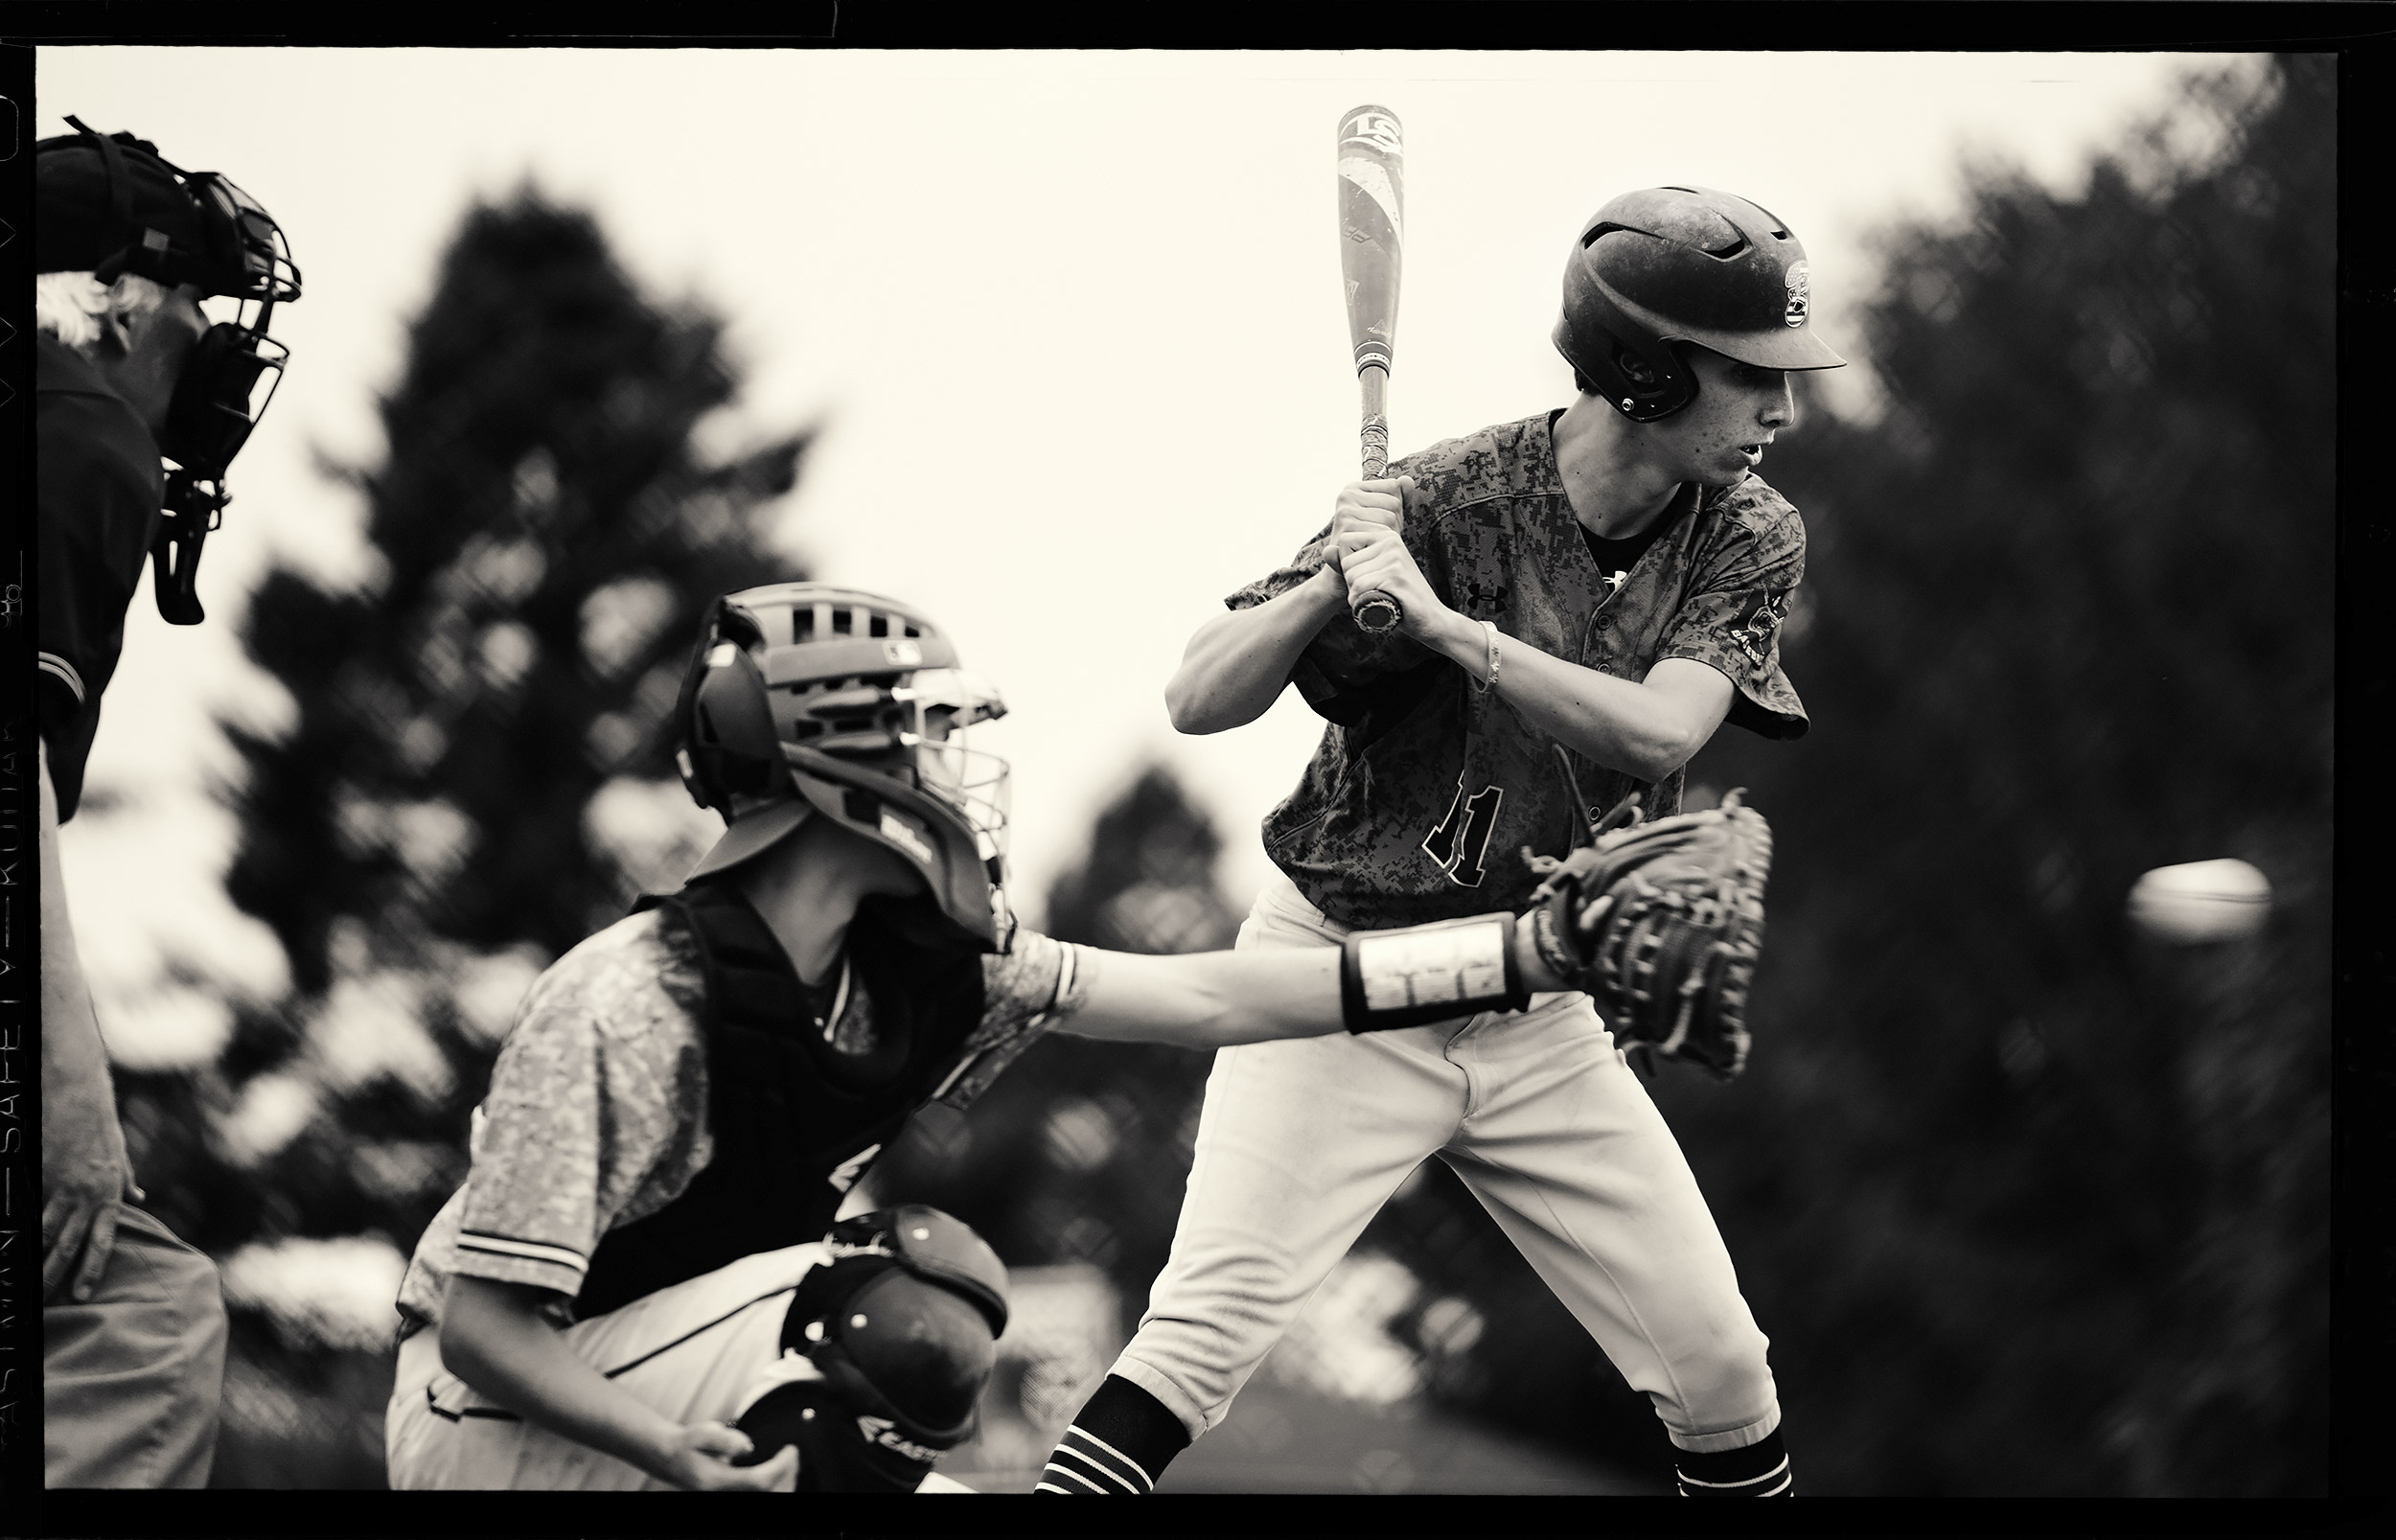 Black and white image of a teenage baseball player standing in the batters box and looking at a fastball